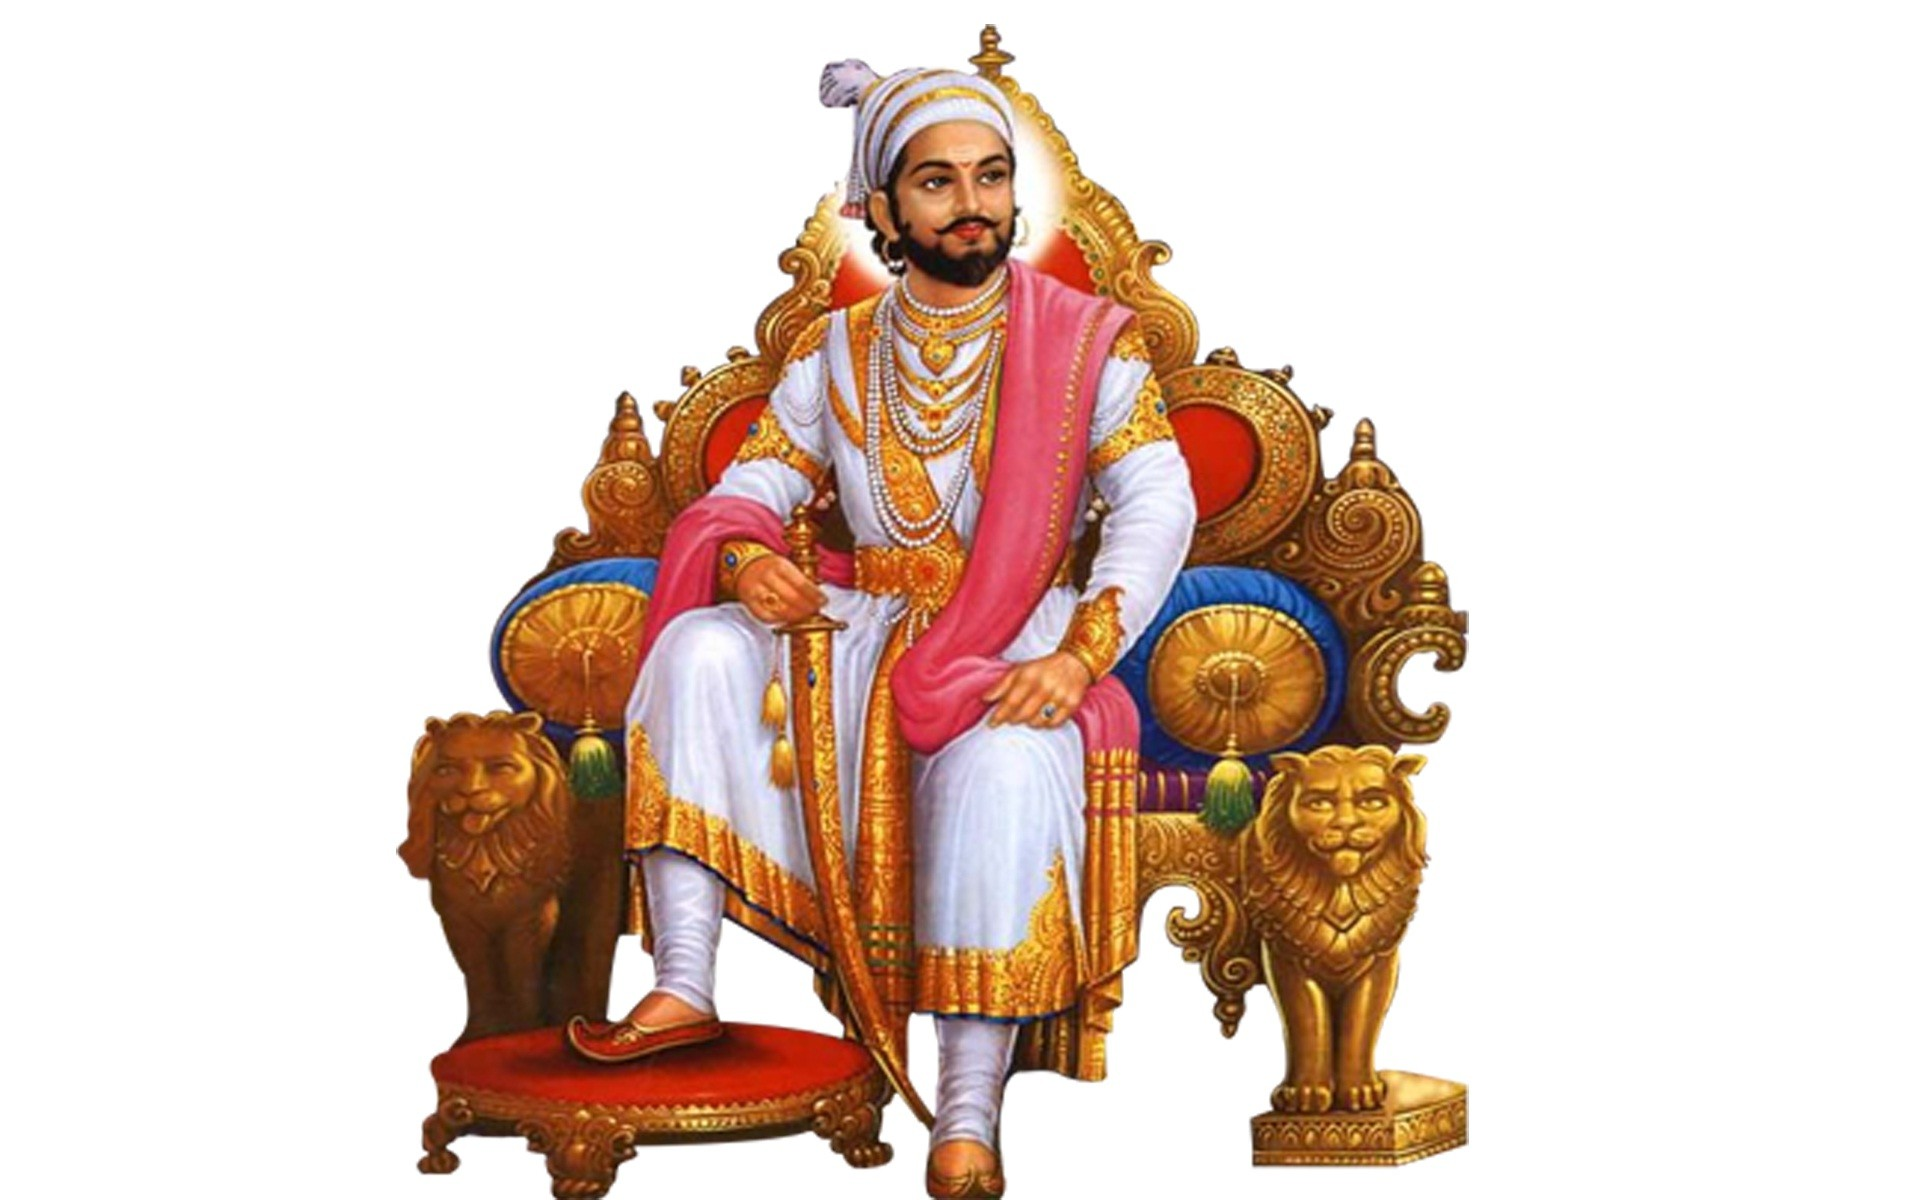 Shivaji Maharaj Hd Wallpaper For Pc King Of The Hill Wallpaper 68 Images